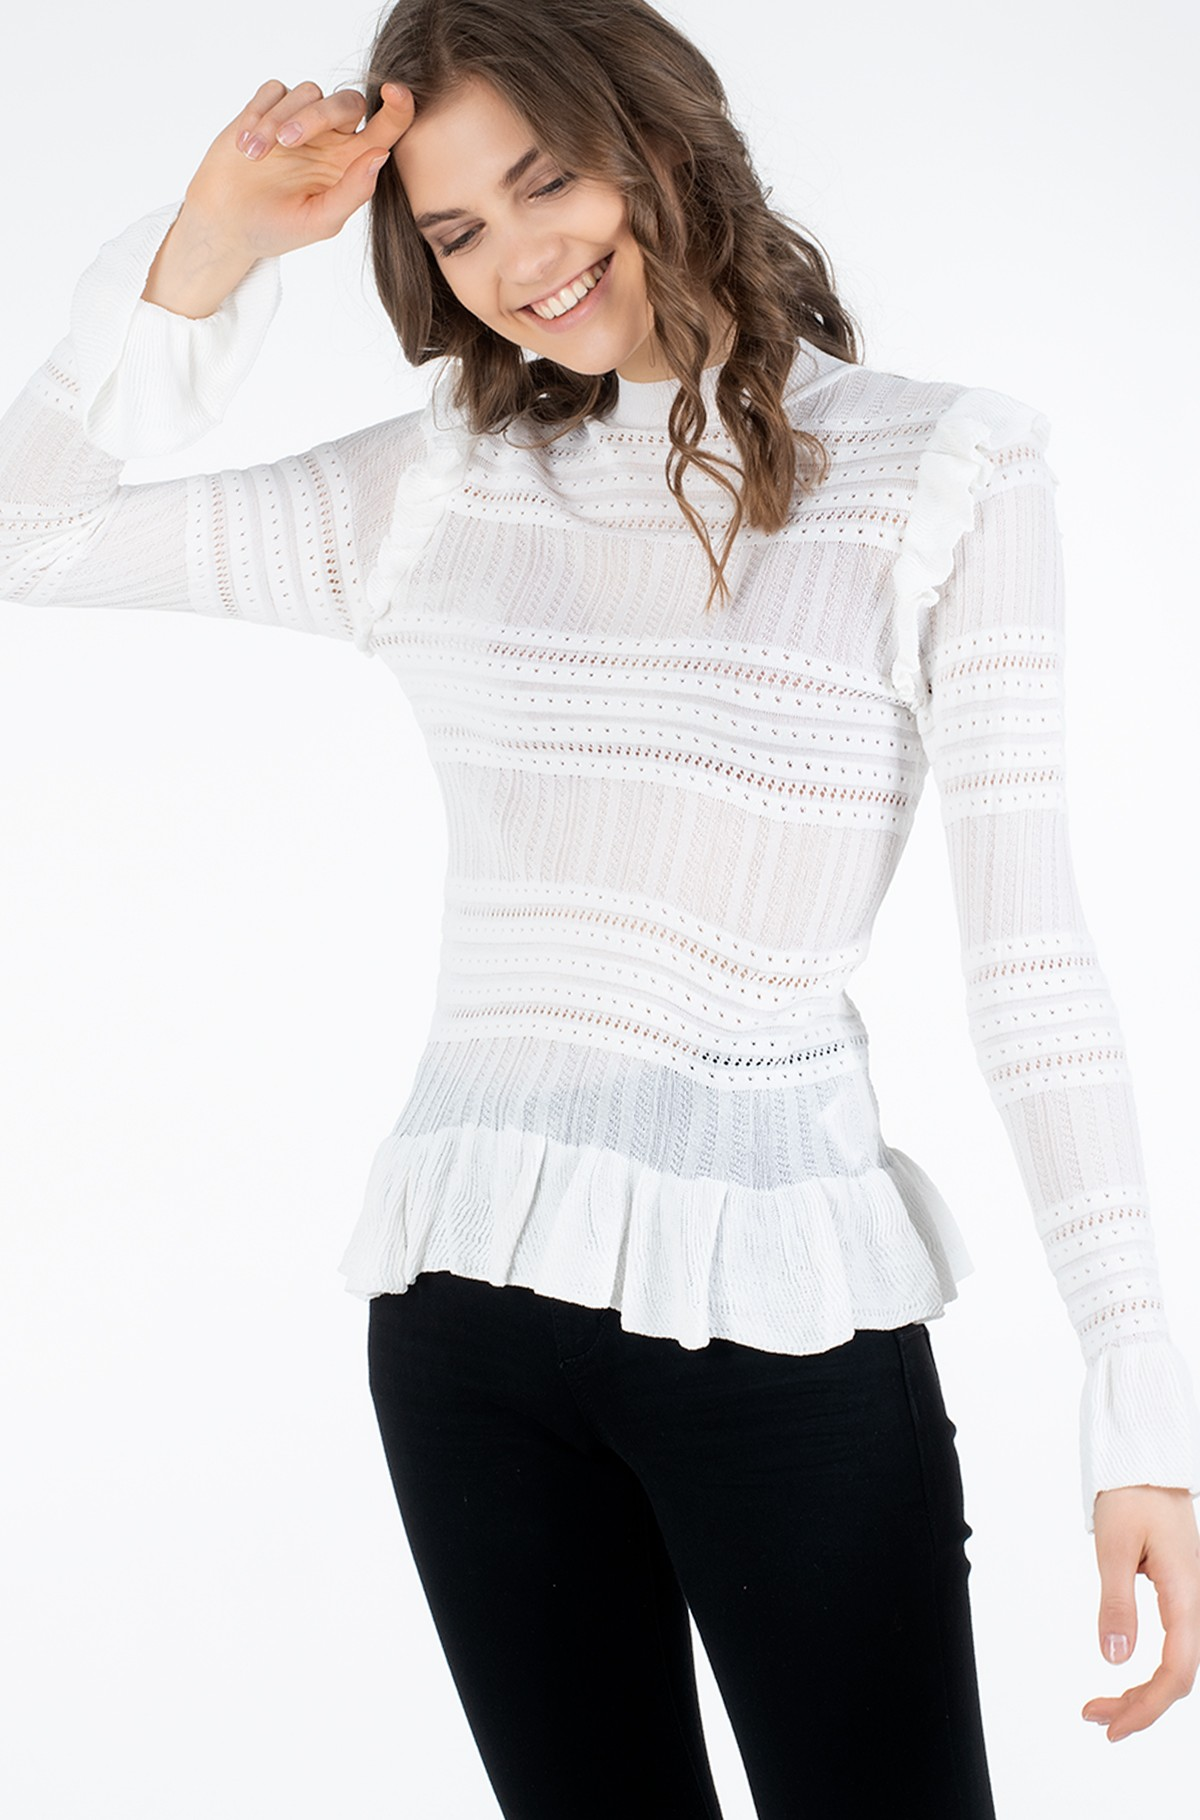 Kootud pluus OLIVIA KNITTED SWEATER/PL701620	-full-1